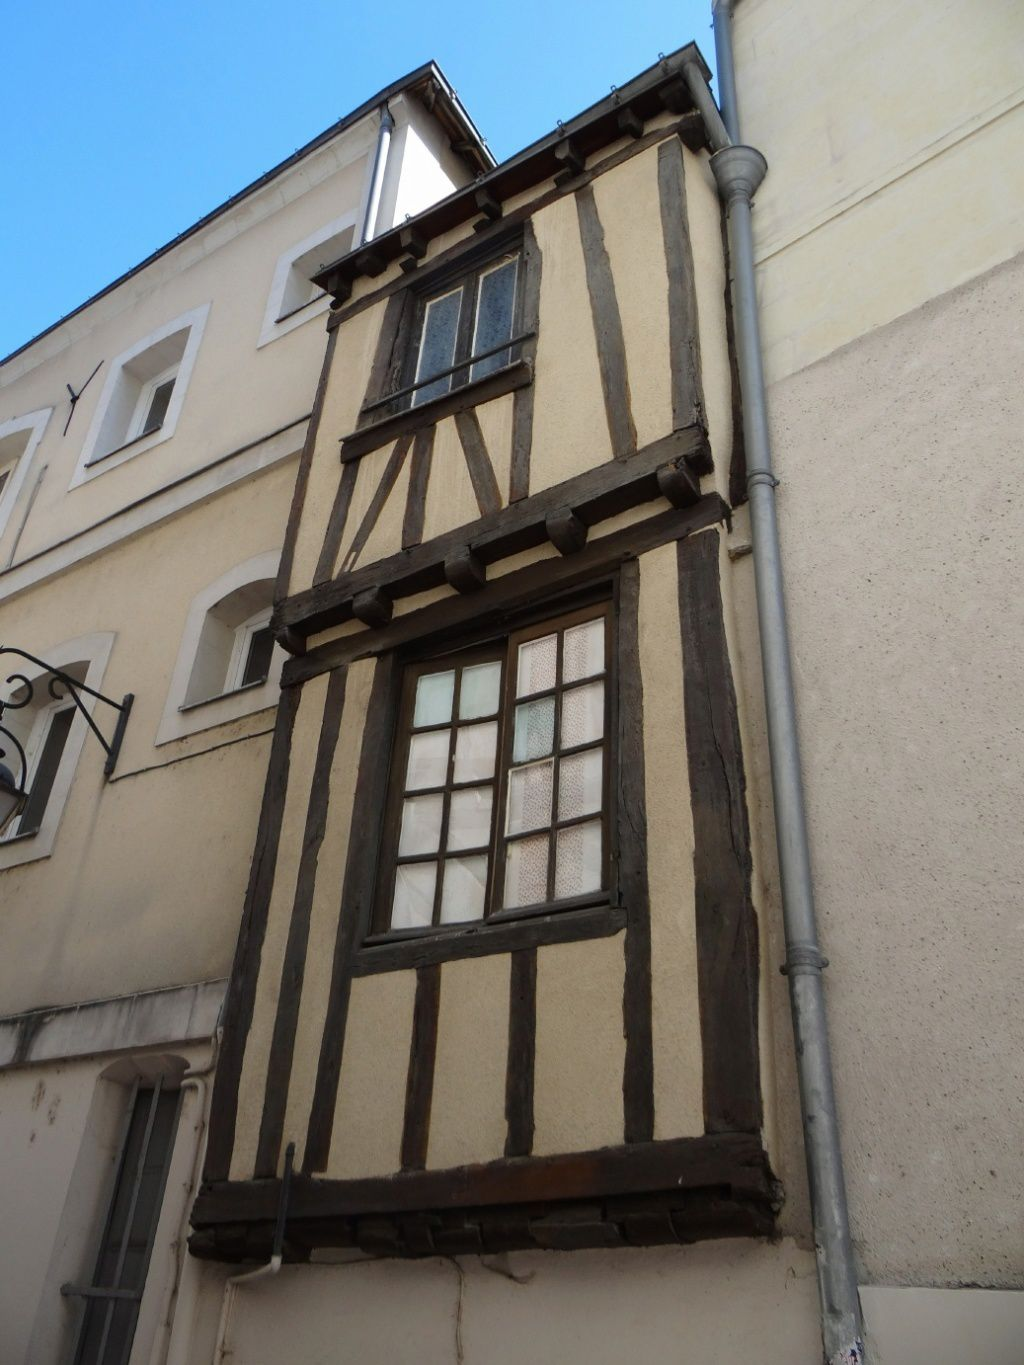 Angers (fin)